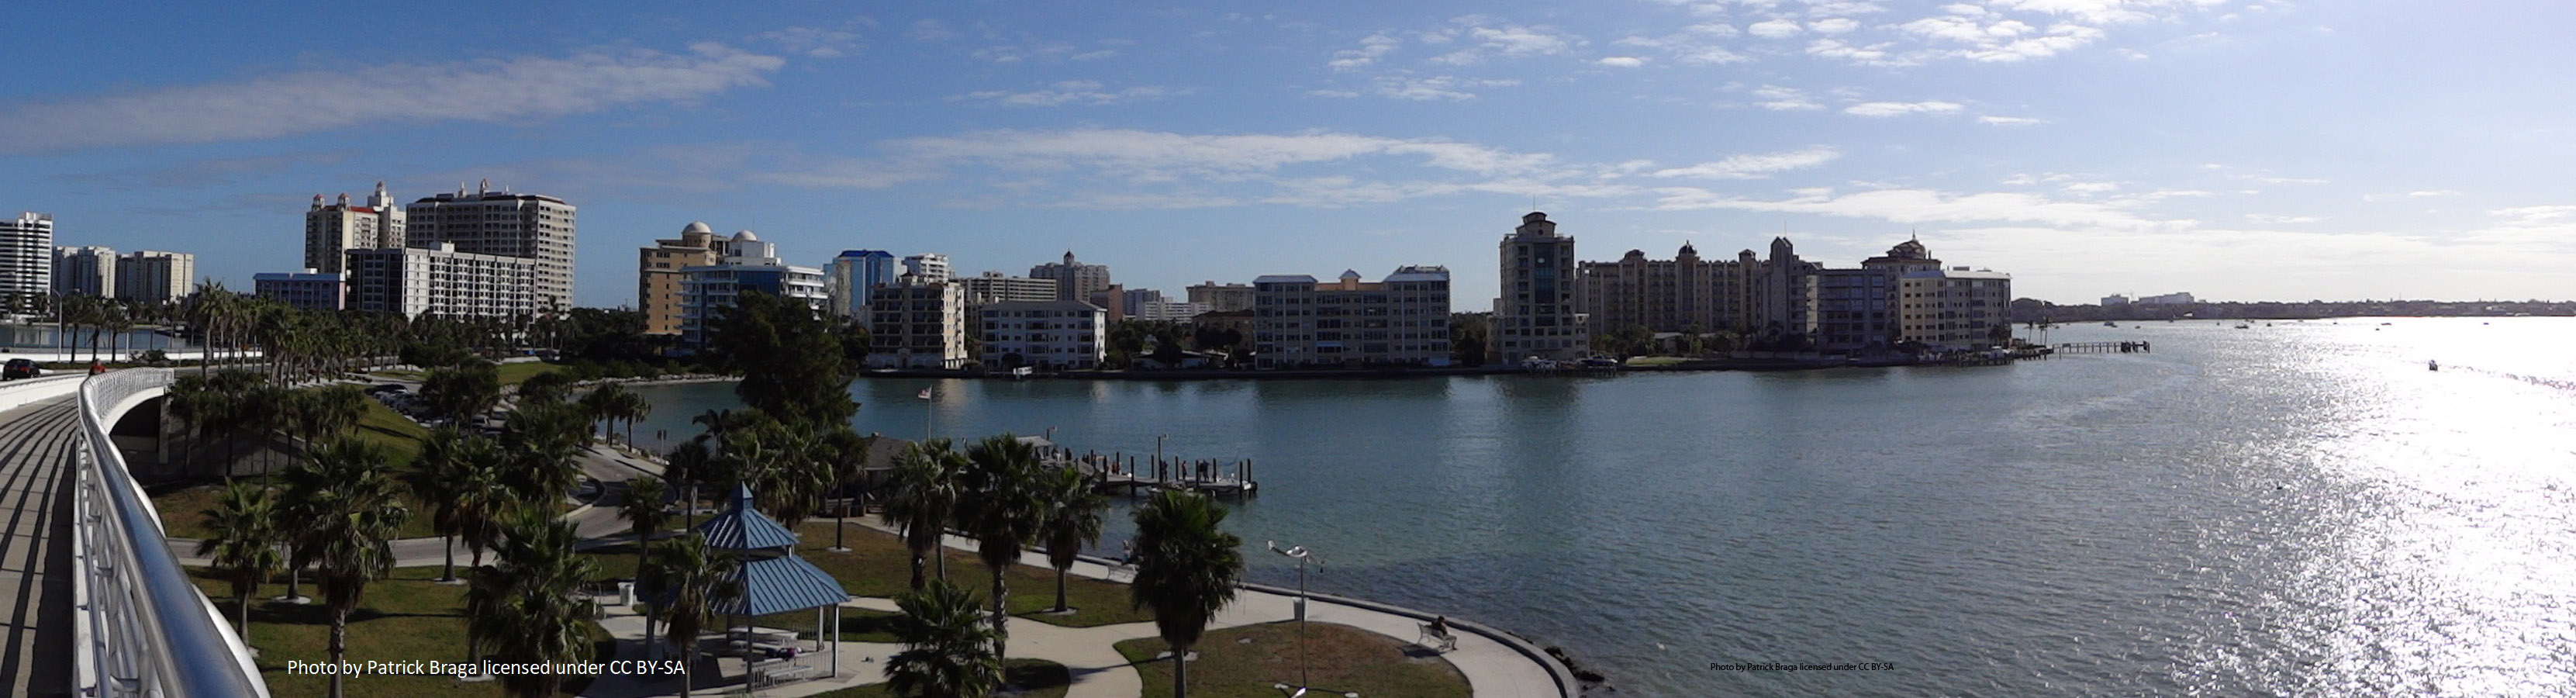 Ring Sarasota Makes Final Stop on 9th Season Stay-cation